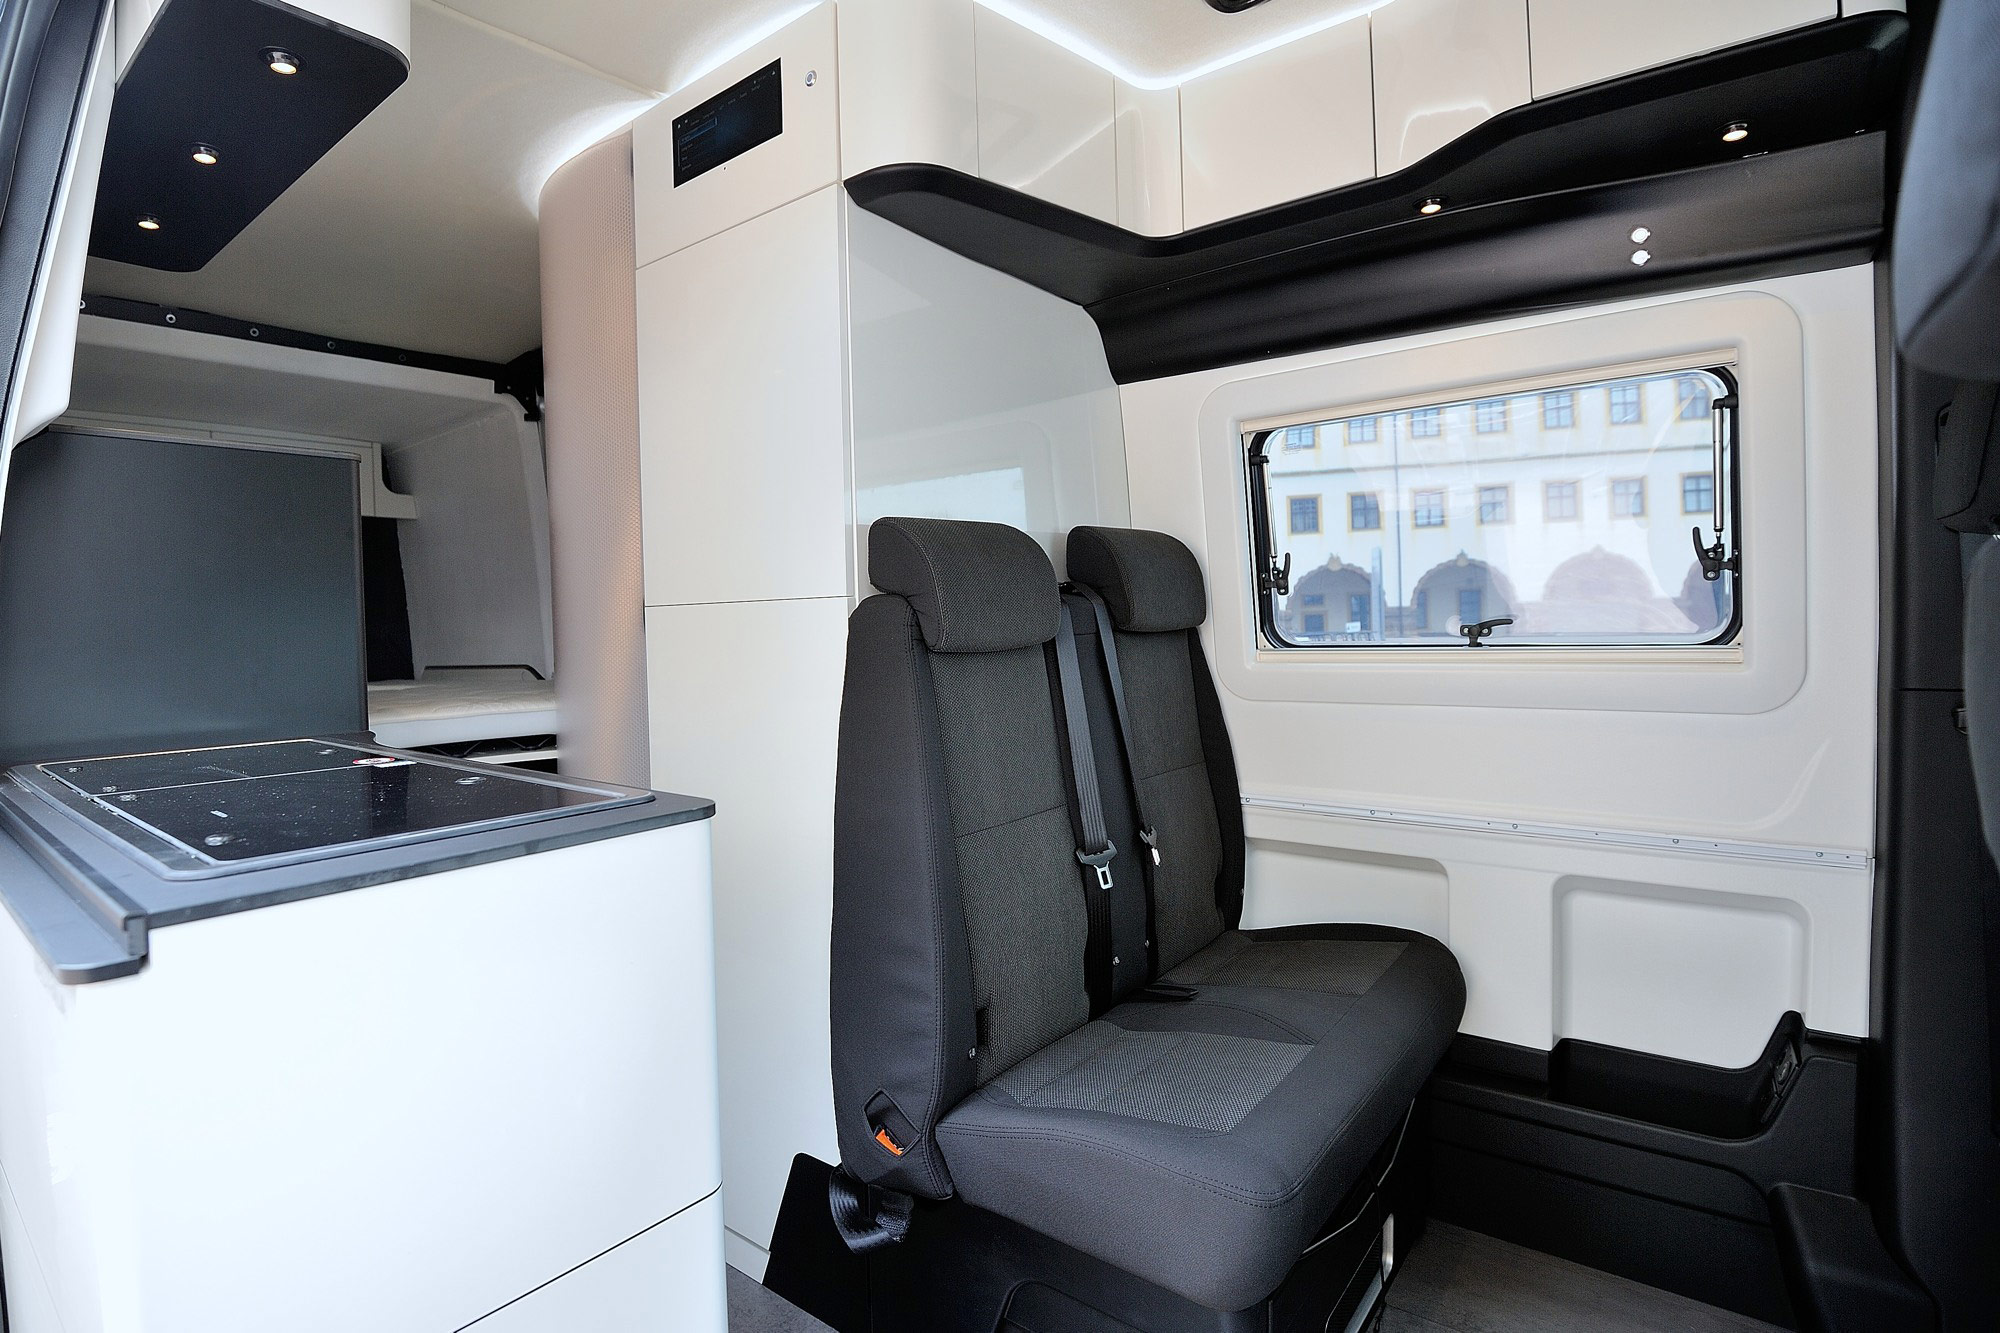 Westfalia James Cook 2019, Westfalia James Cook 2019: Neues Topmodell vorgestellt